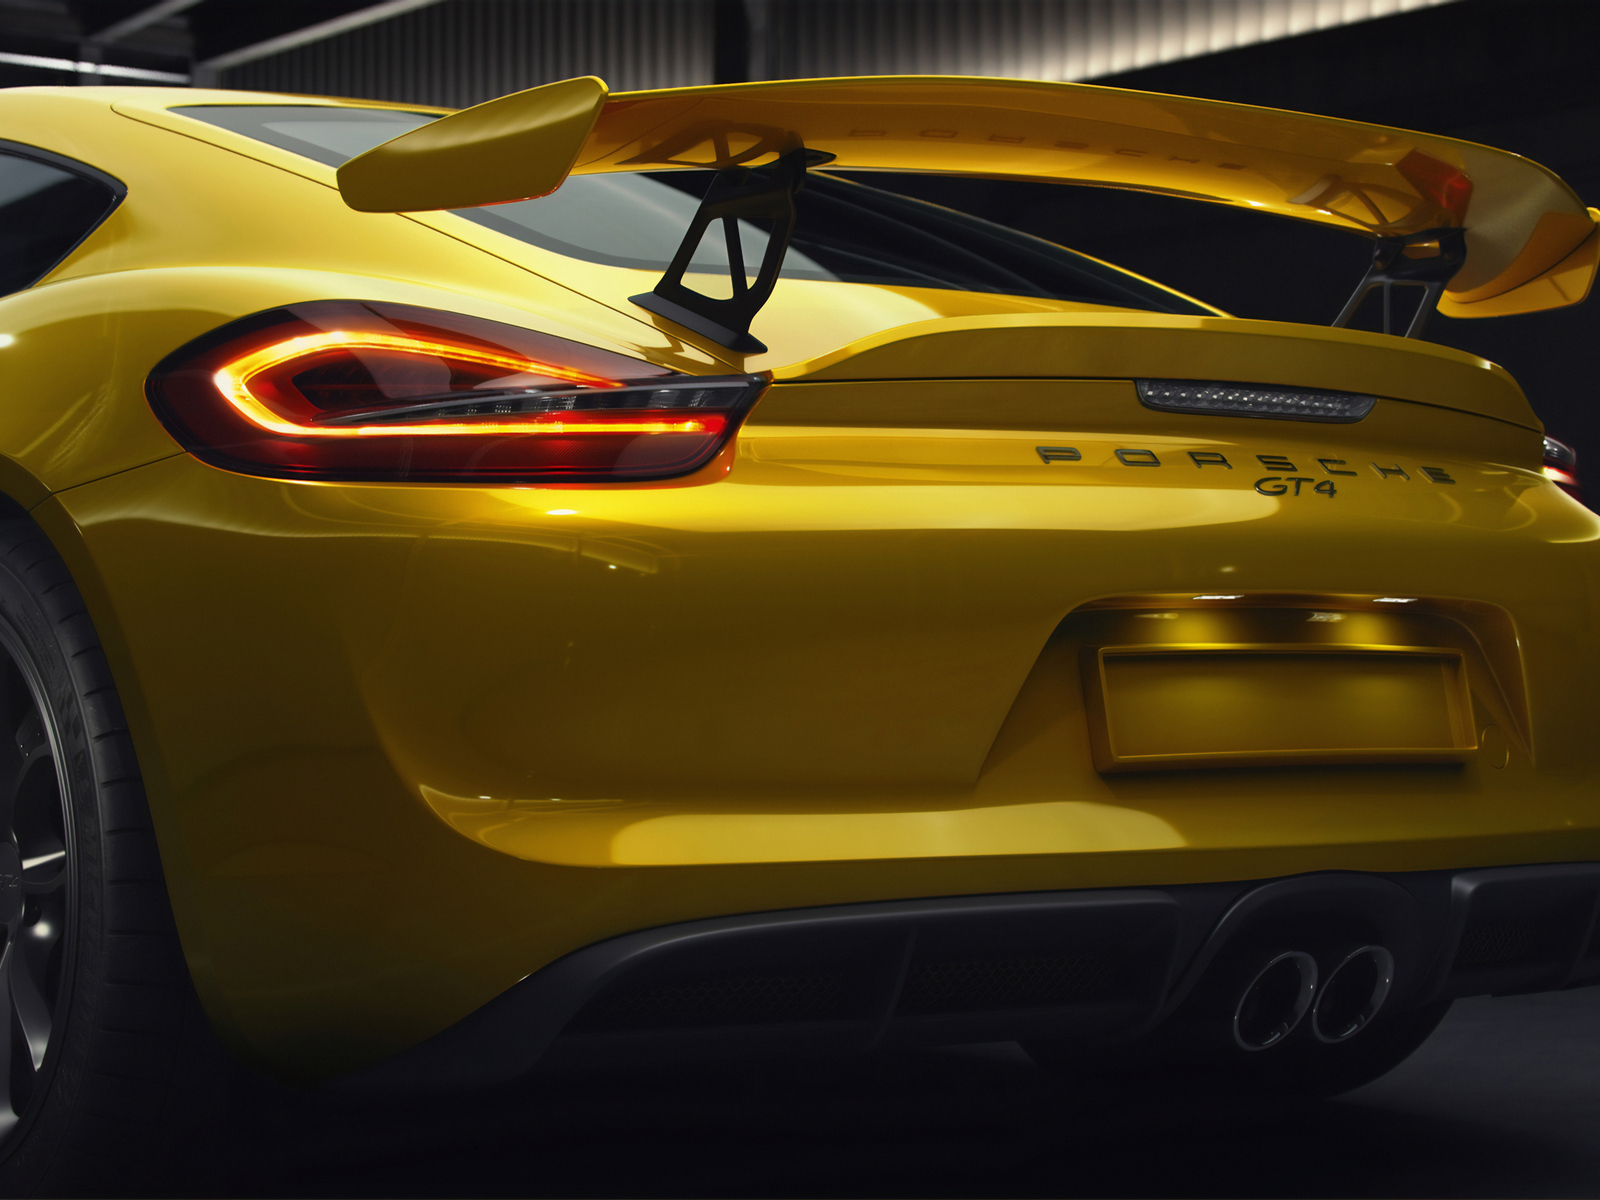 1600x1200 Yellow Porsche Gt3 2019 1600x1200 Resolution Hd 4k Wallpapers Images Backgrounds Photos And Pictures